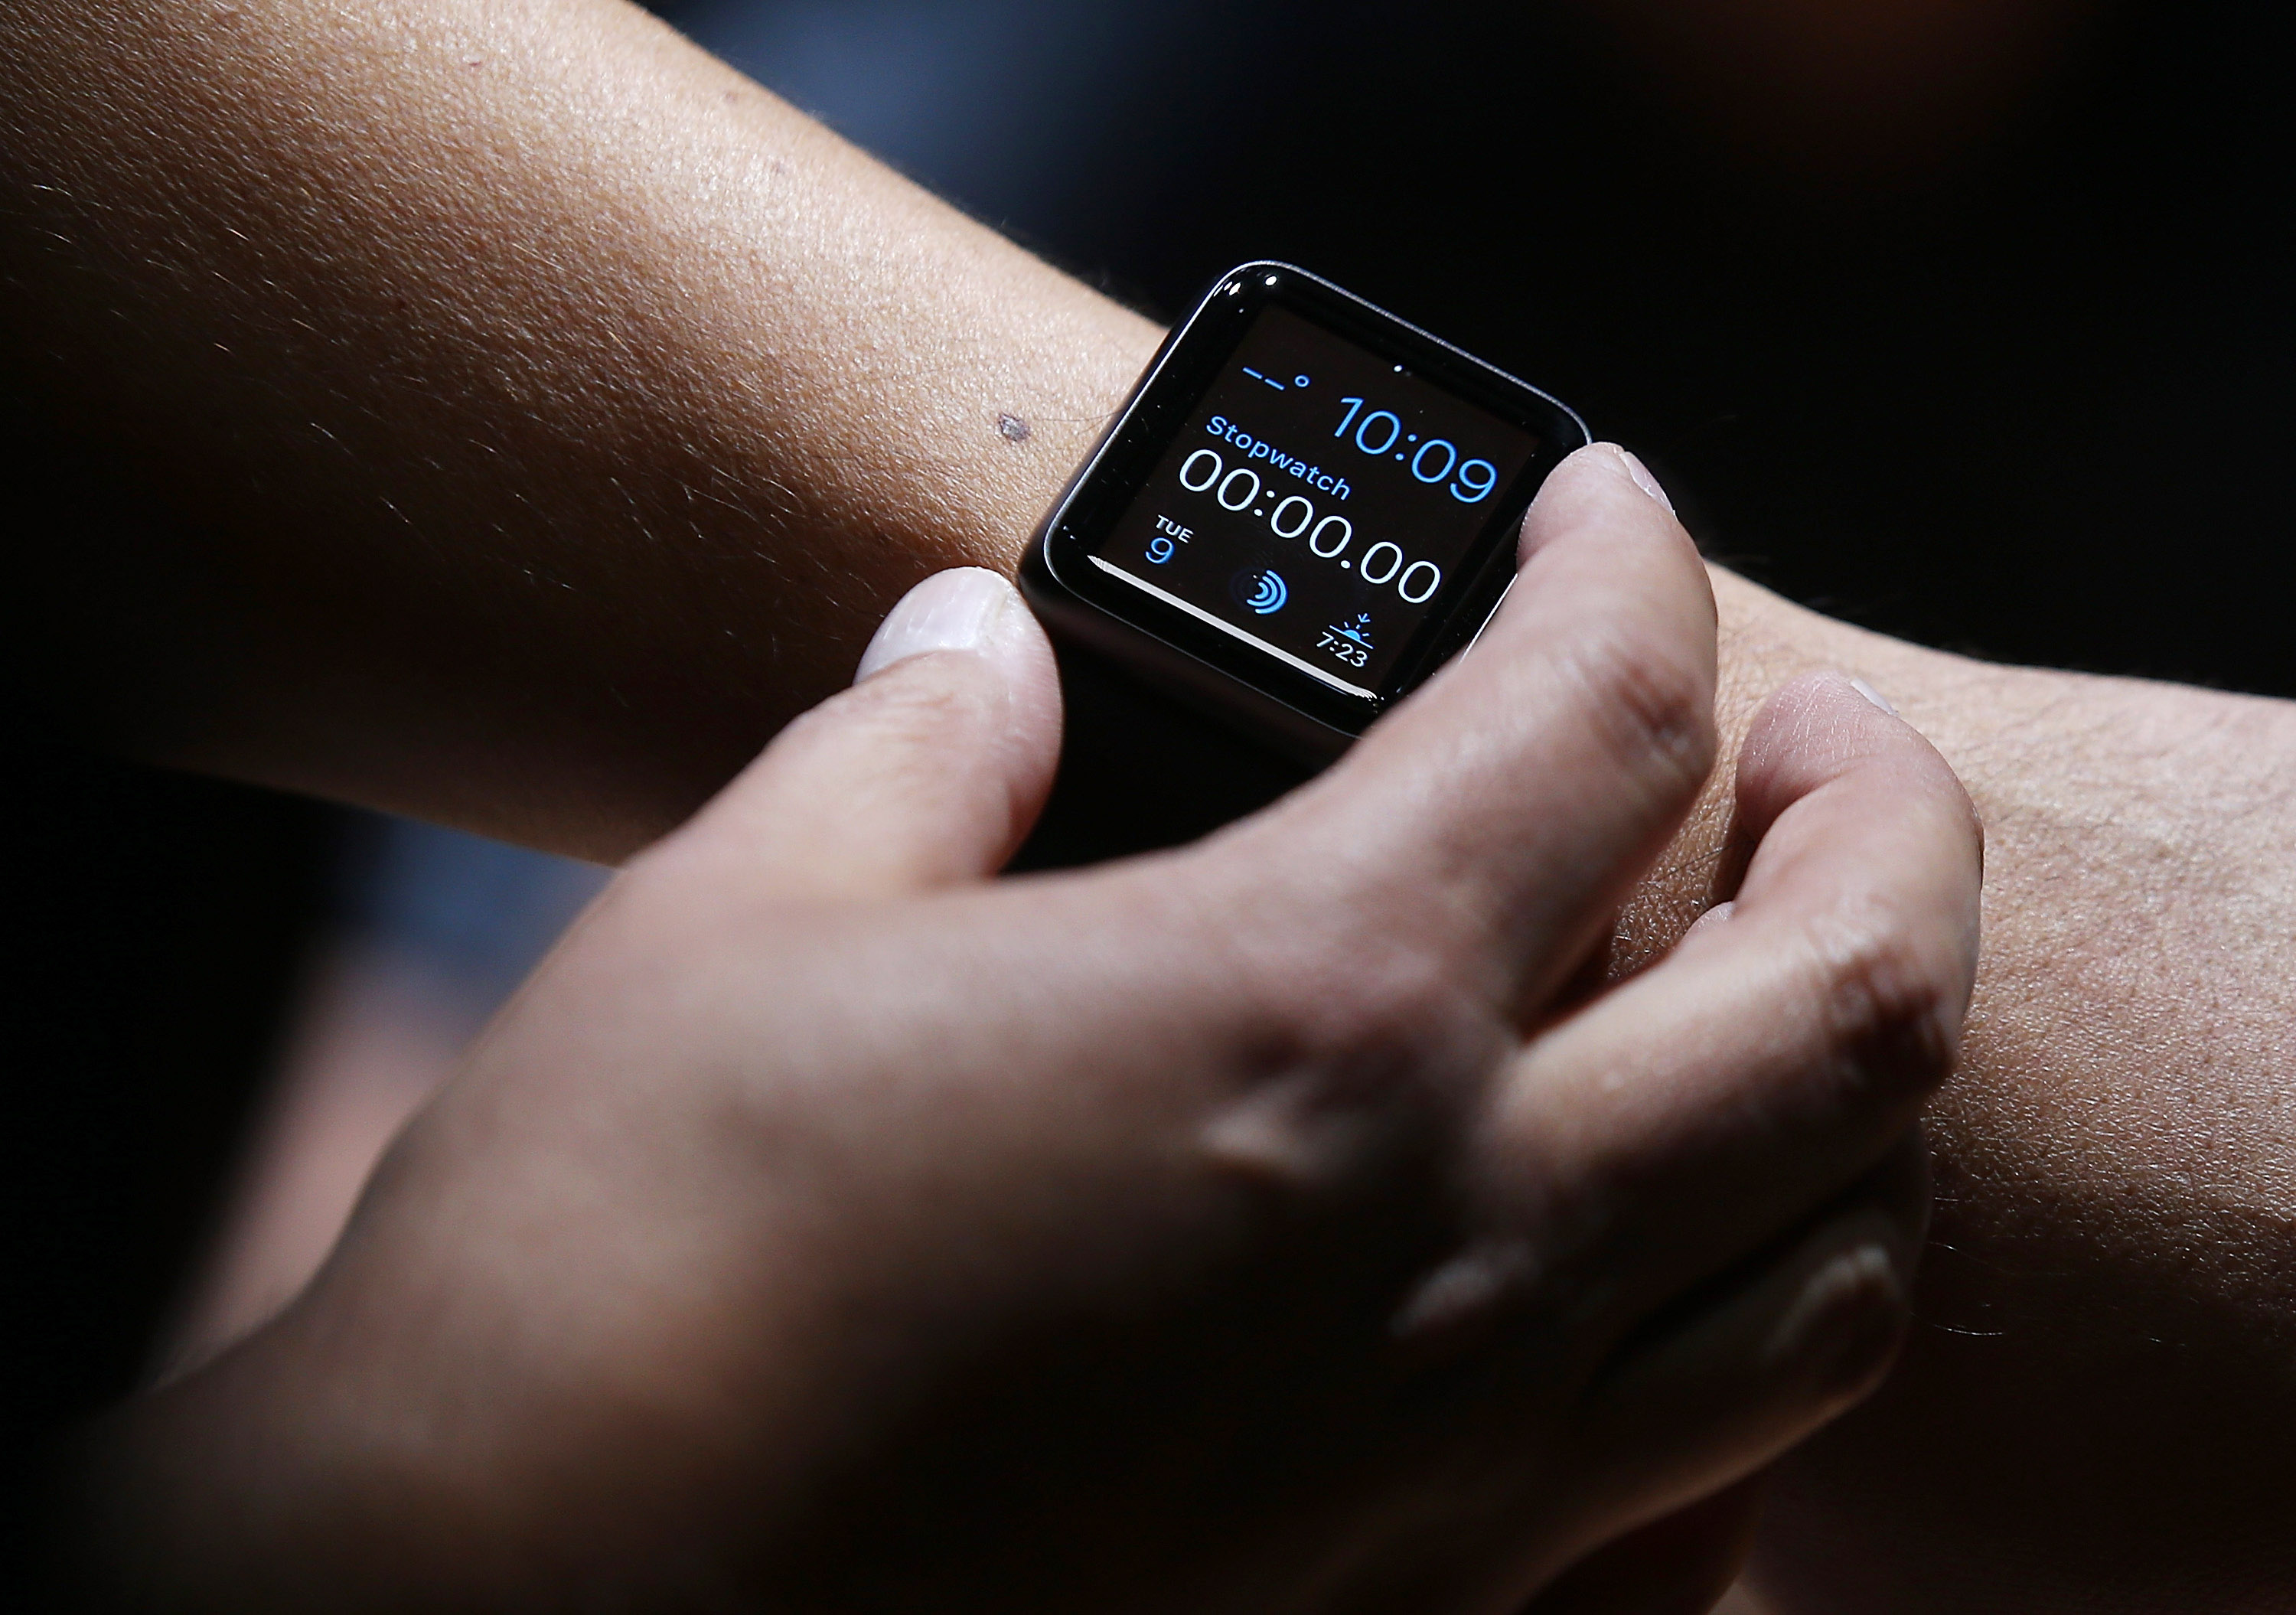 Apple May Show Off More Than Watch at Next Event